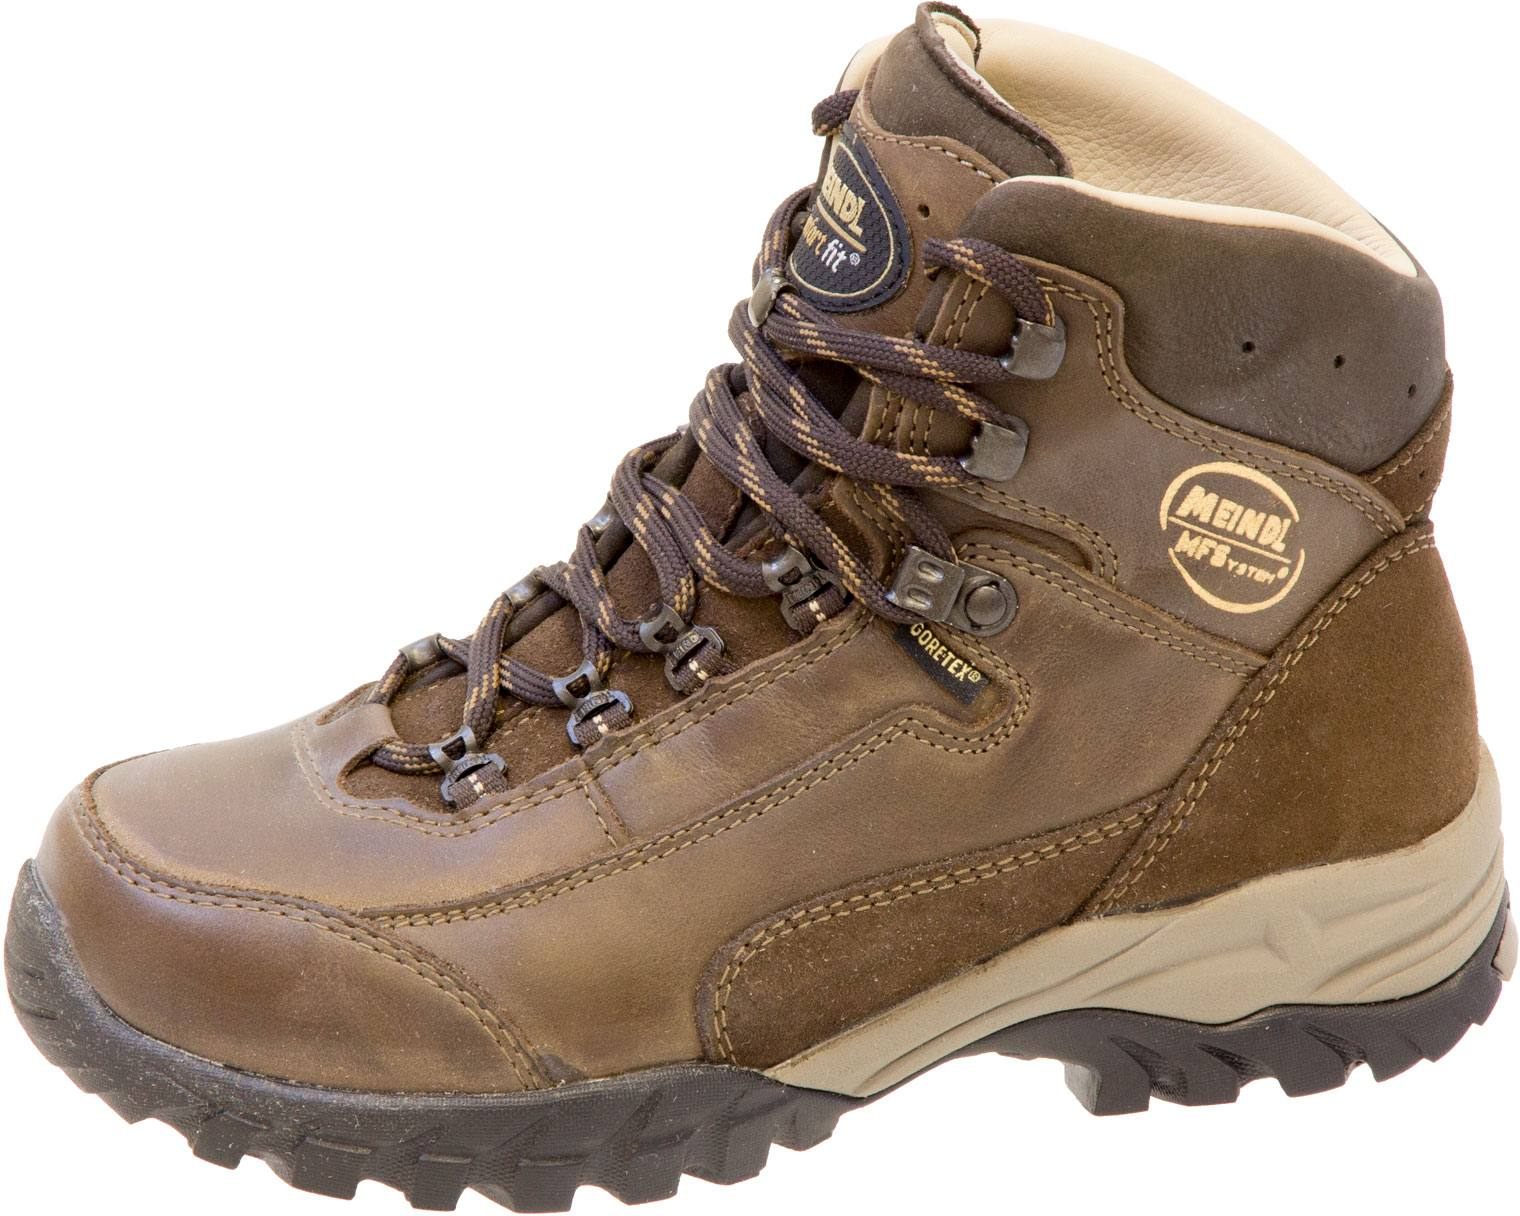 Meindl Matrei Lady Hiking Boots Outdoor Equipment And